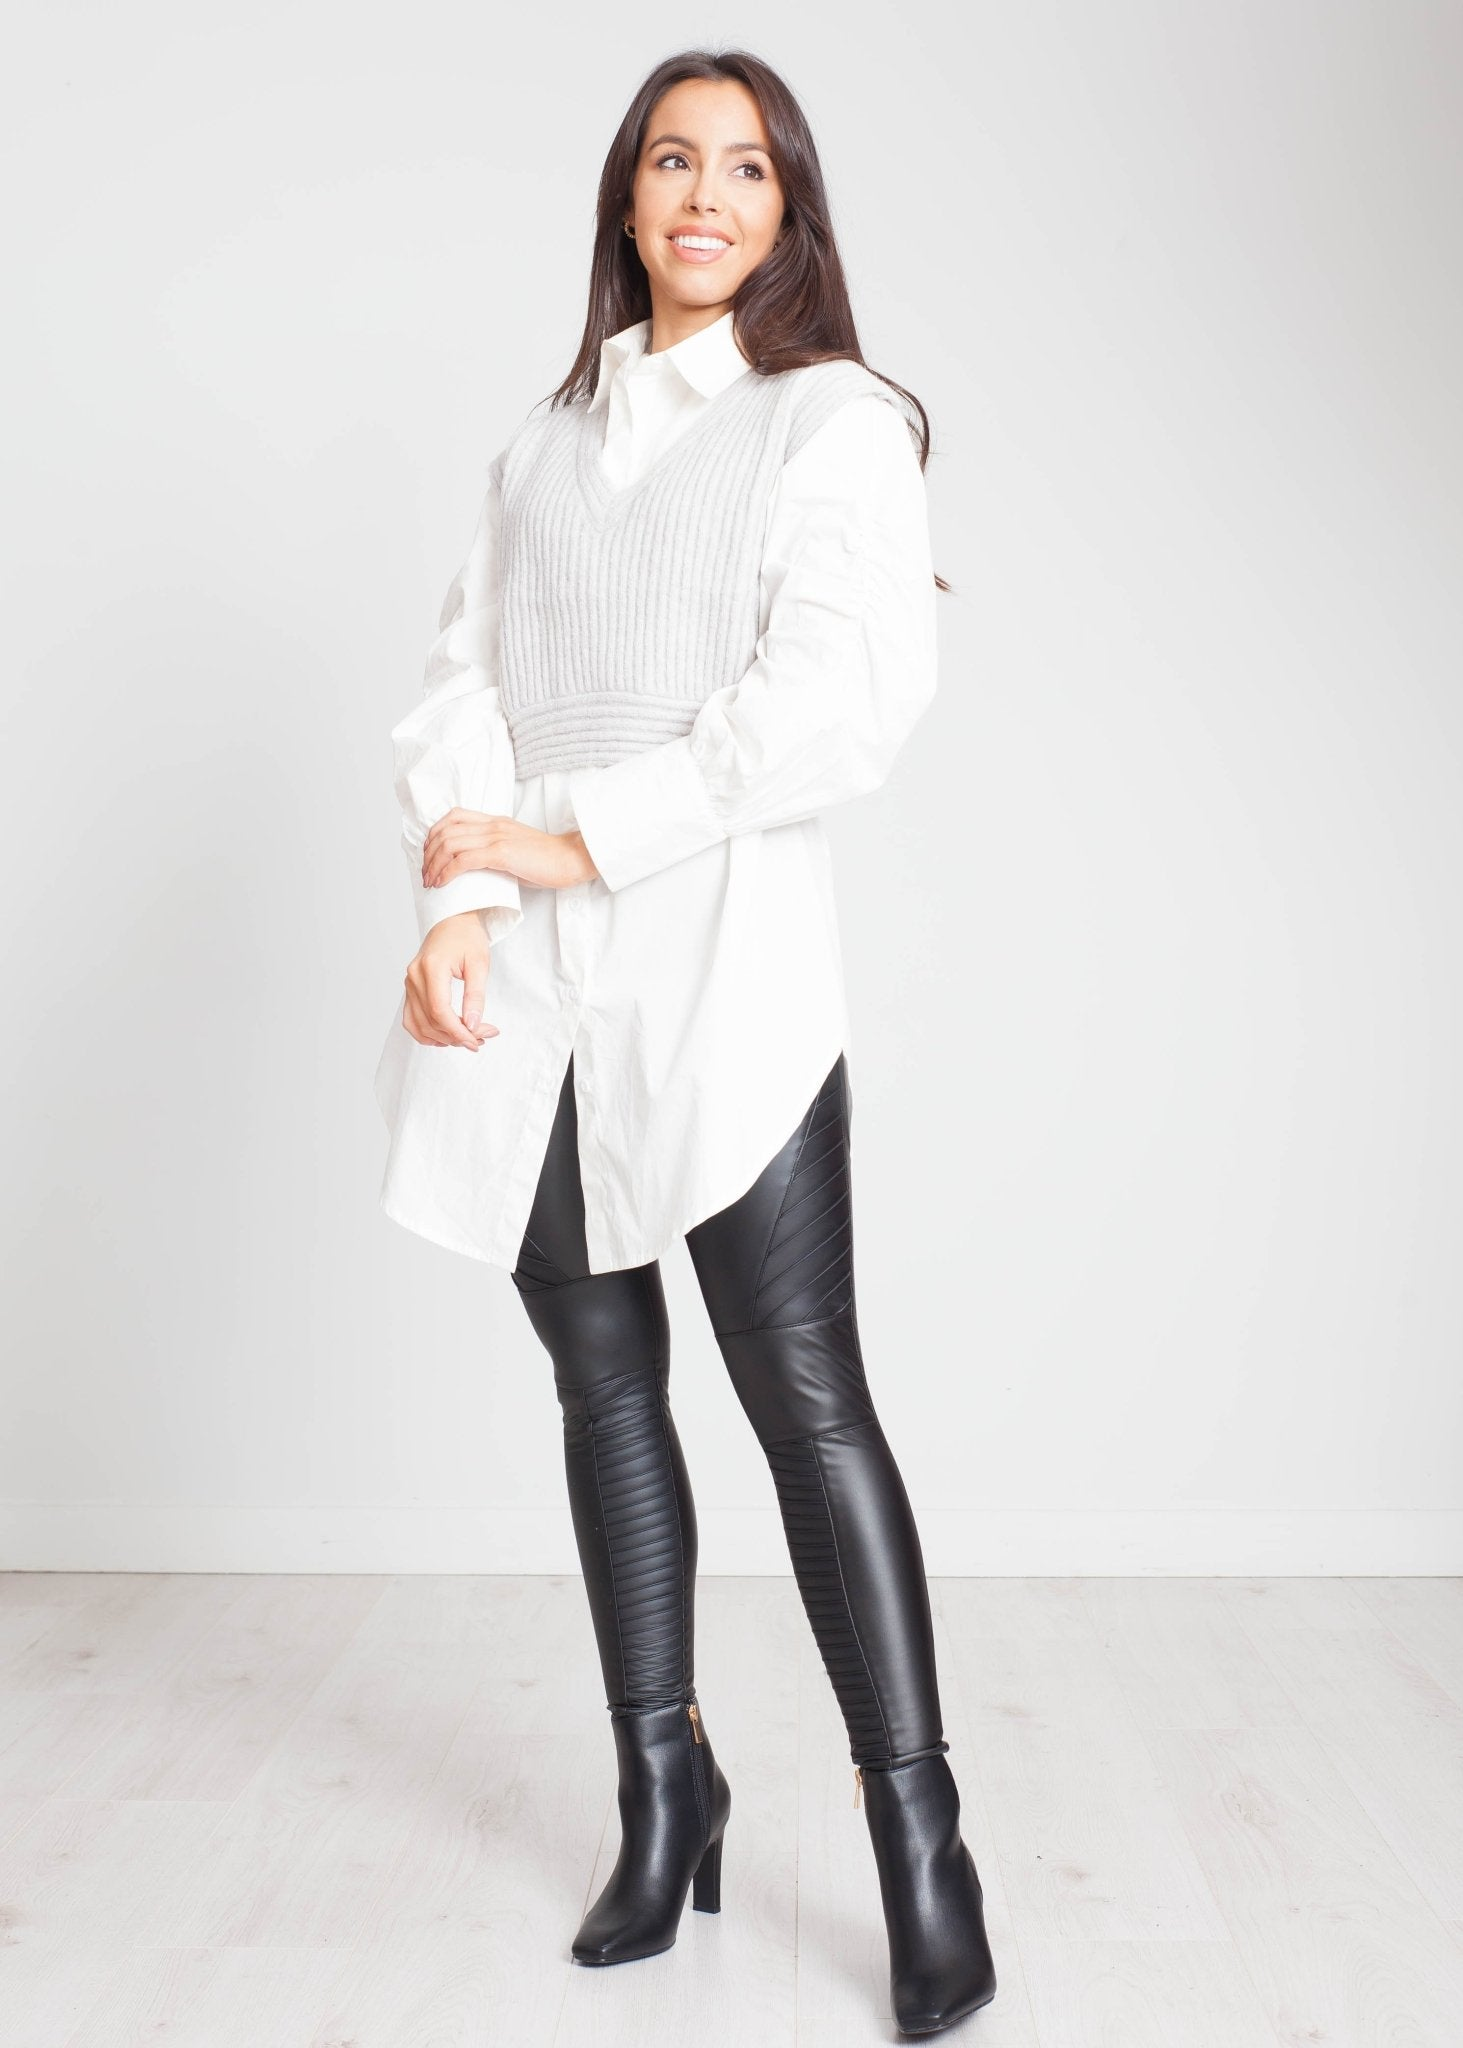 Elsa Oversized Shirt In White - The Walk in Wardrobe